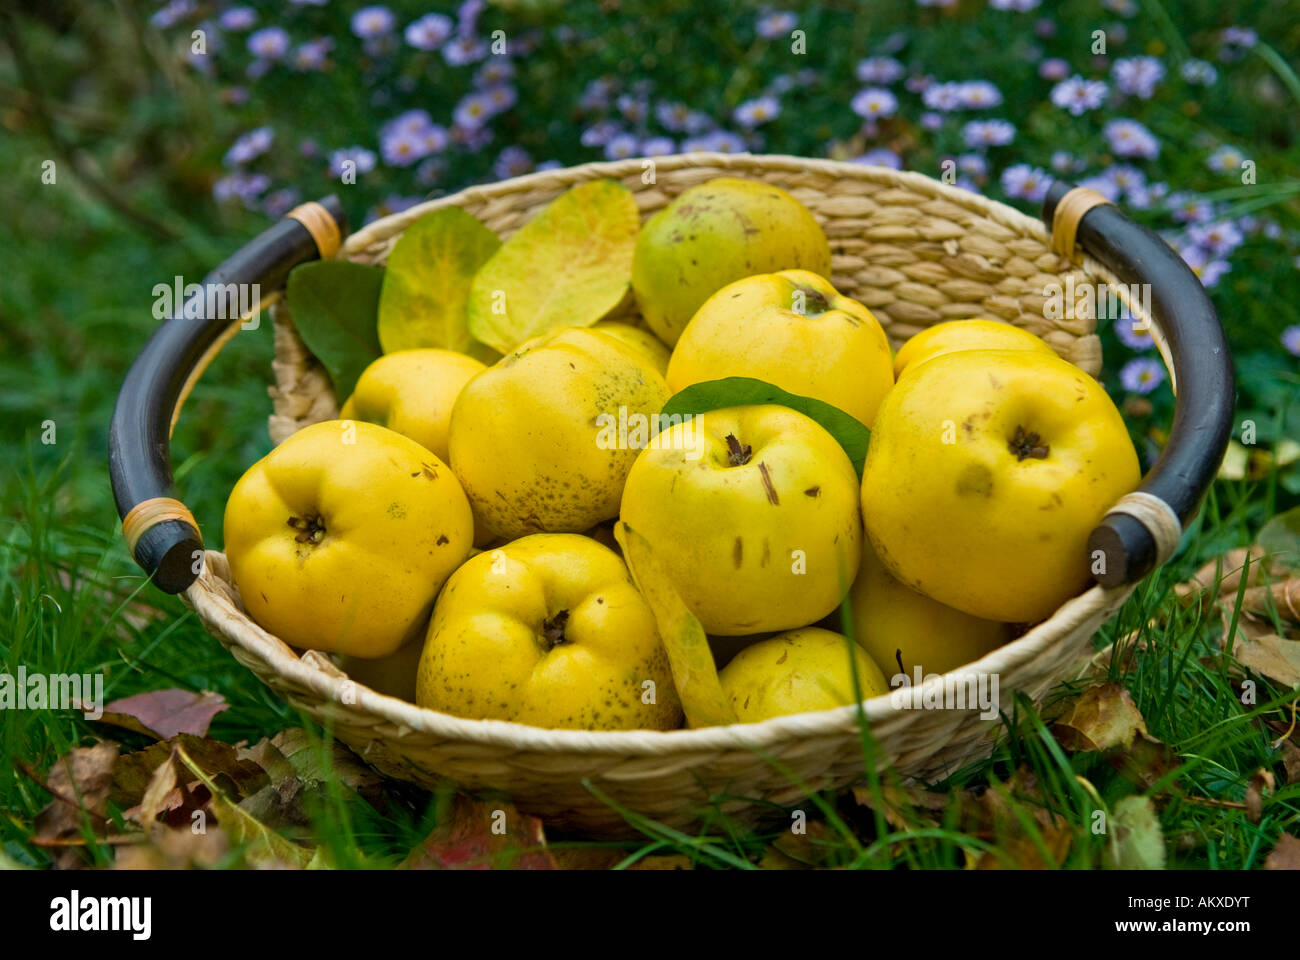 Basket with freshly harvested quinces (Cydonia oblonga) Stock Photo